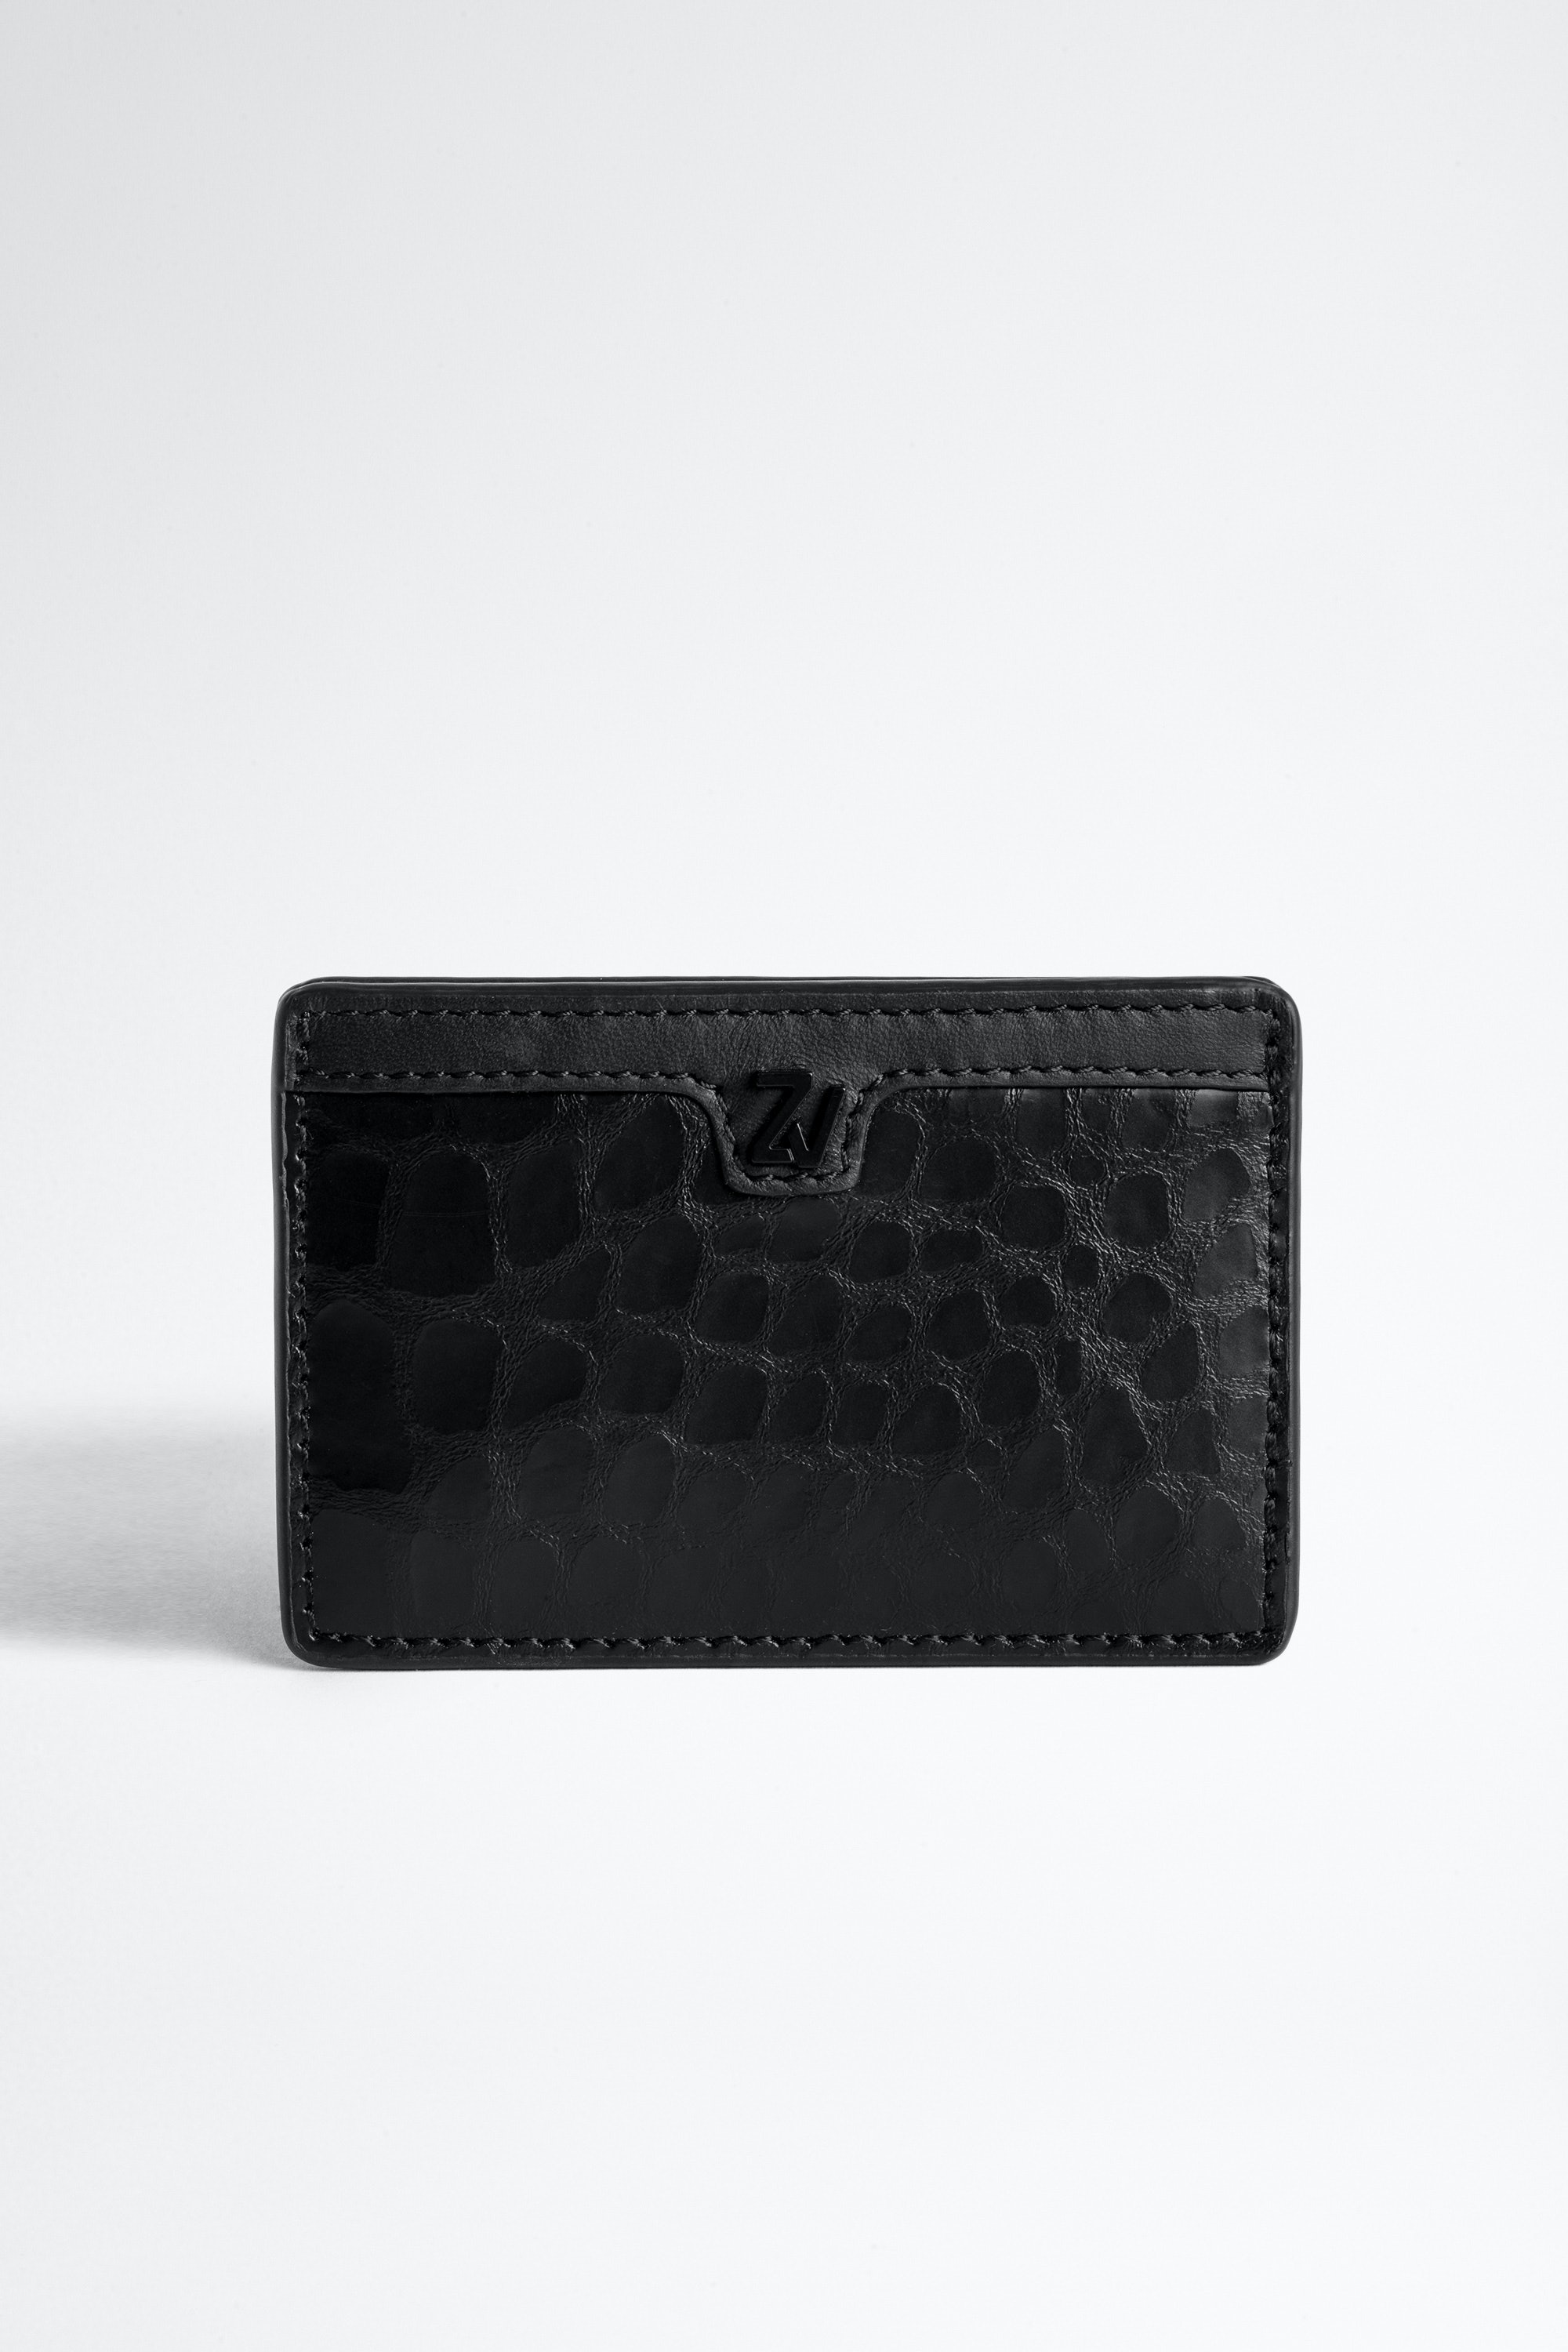 ZV Initiale Nyro Croco Card Holder